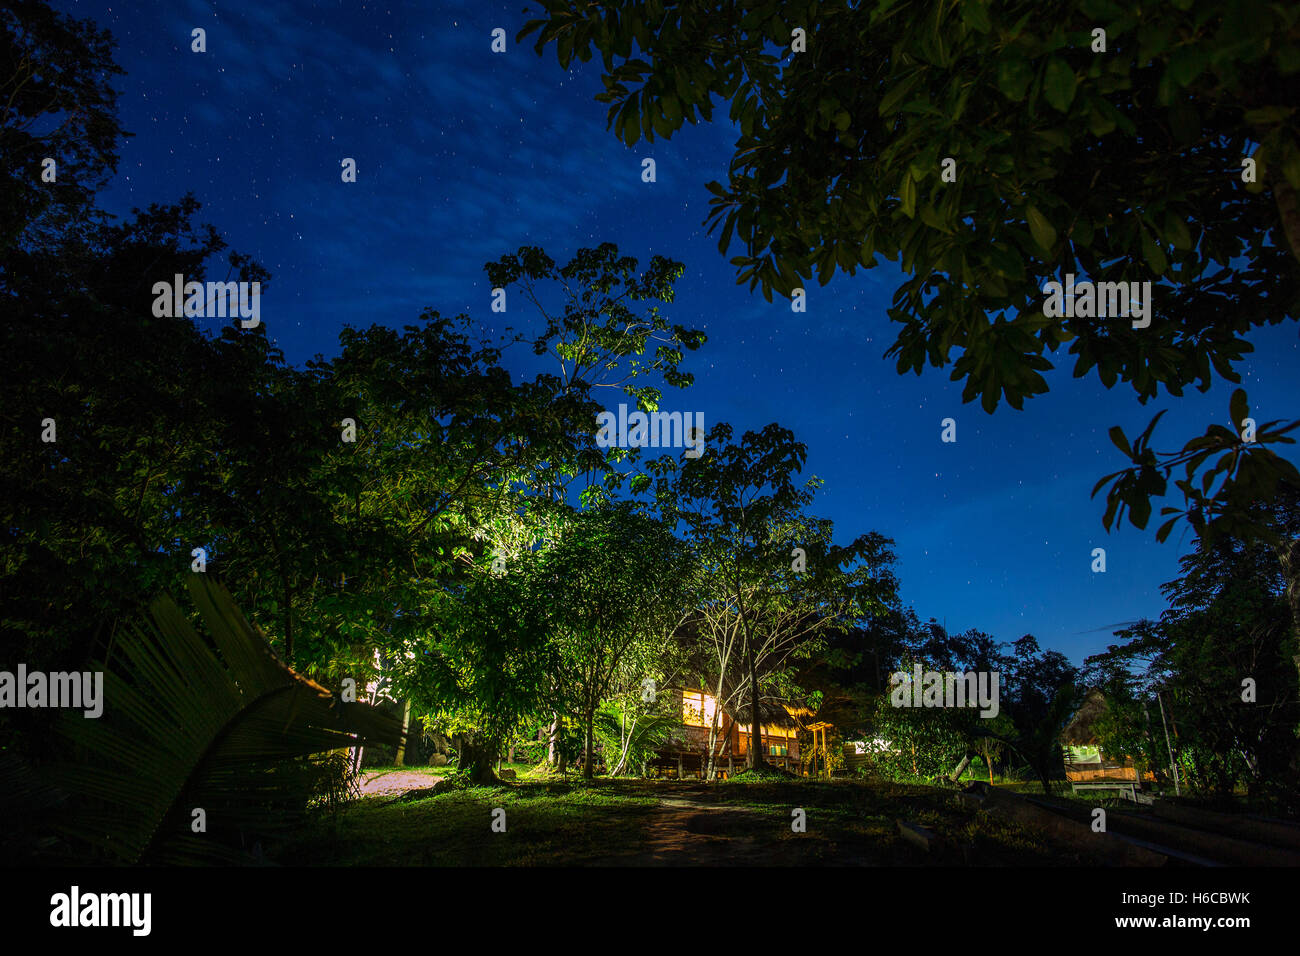 An Ayahuasca shipibo plant medicine Healing center in the Peruvian Amazon rainforest at night. - Stock Image